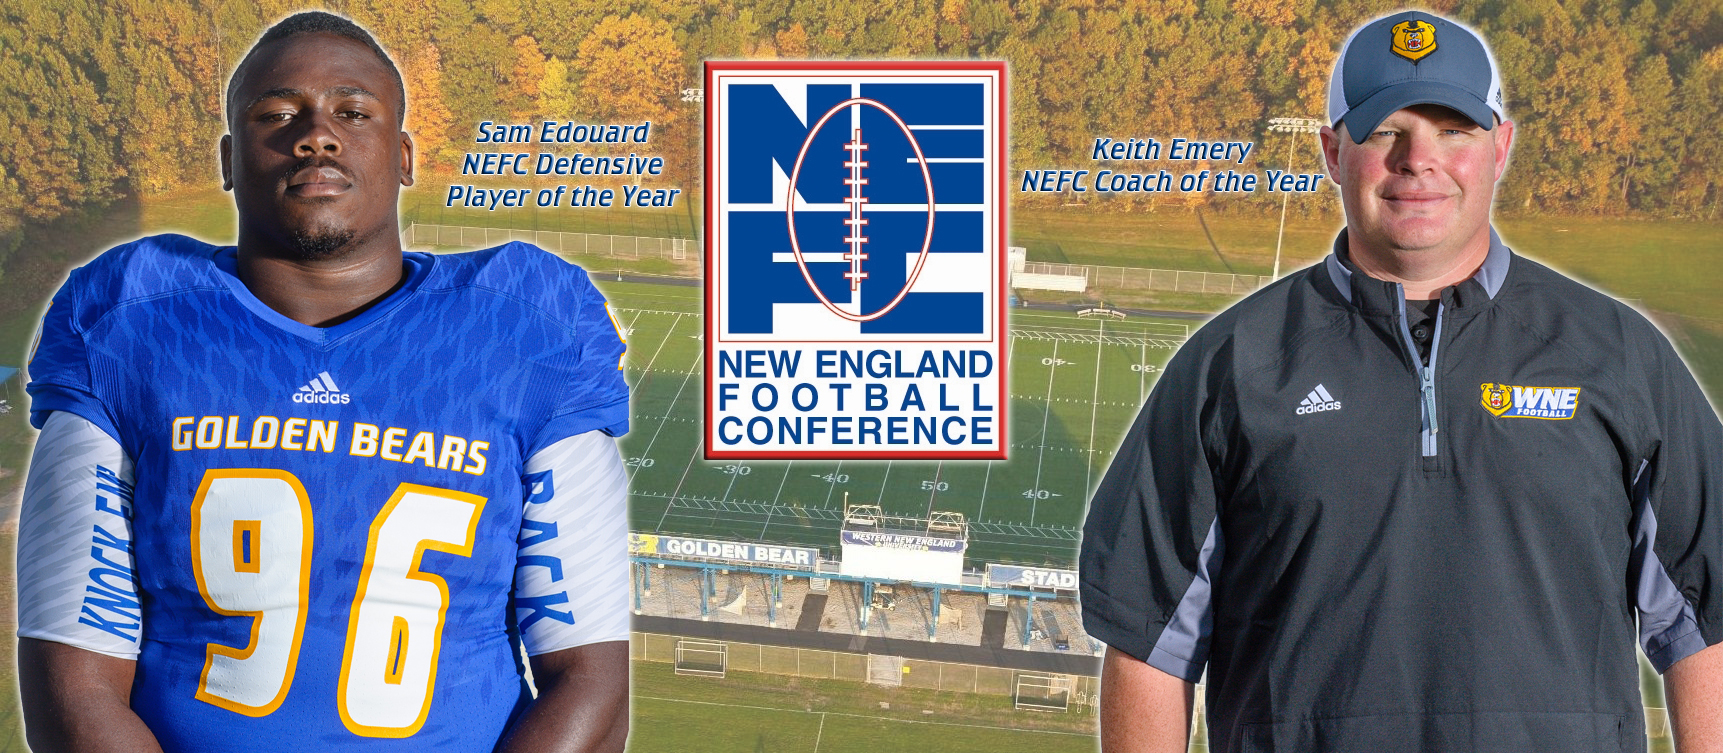 Edouard & Emery Earn Major Awards as Western New England Dominates All-NEFC Honors